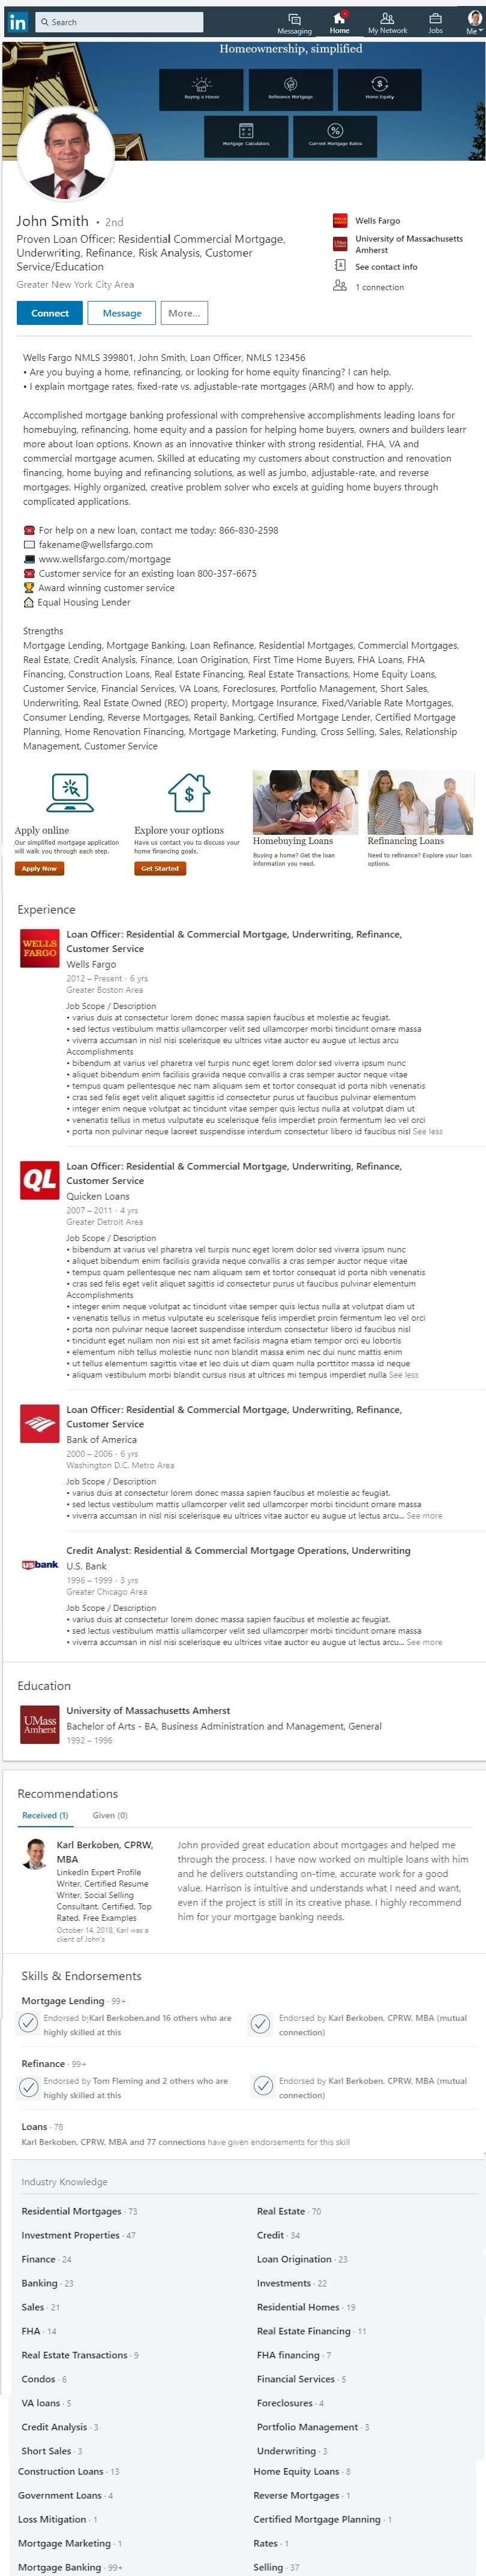 mortgage broker banker LinkedIn profile example